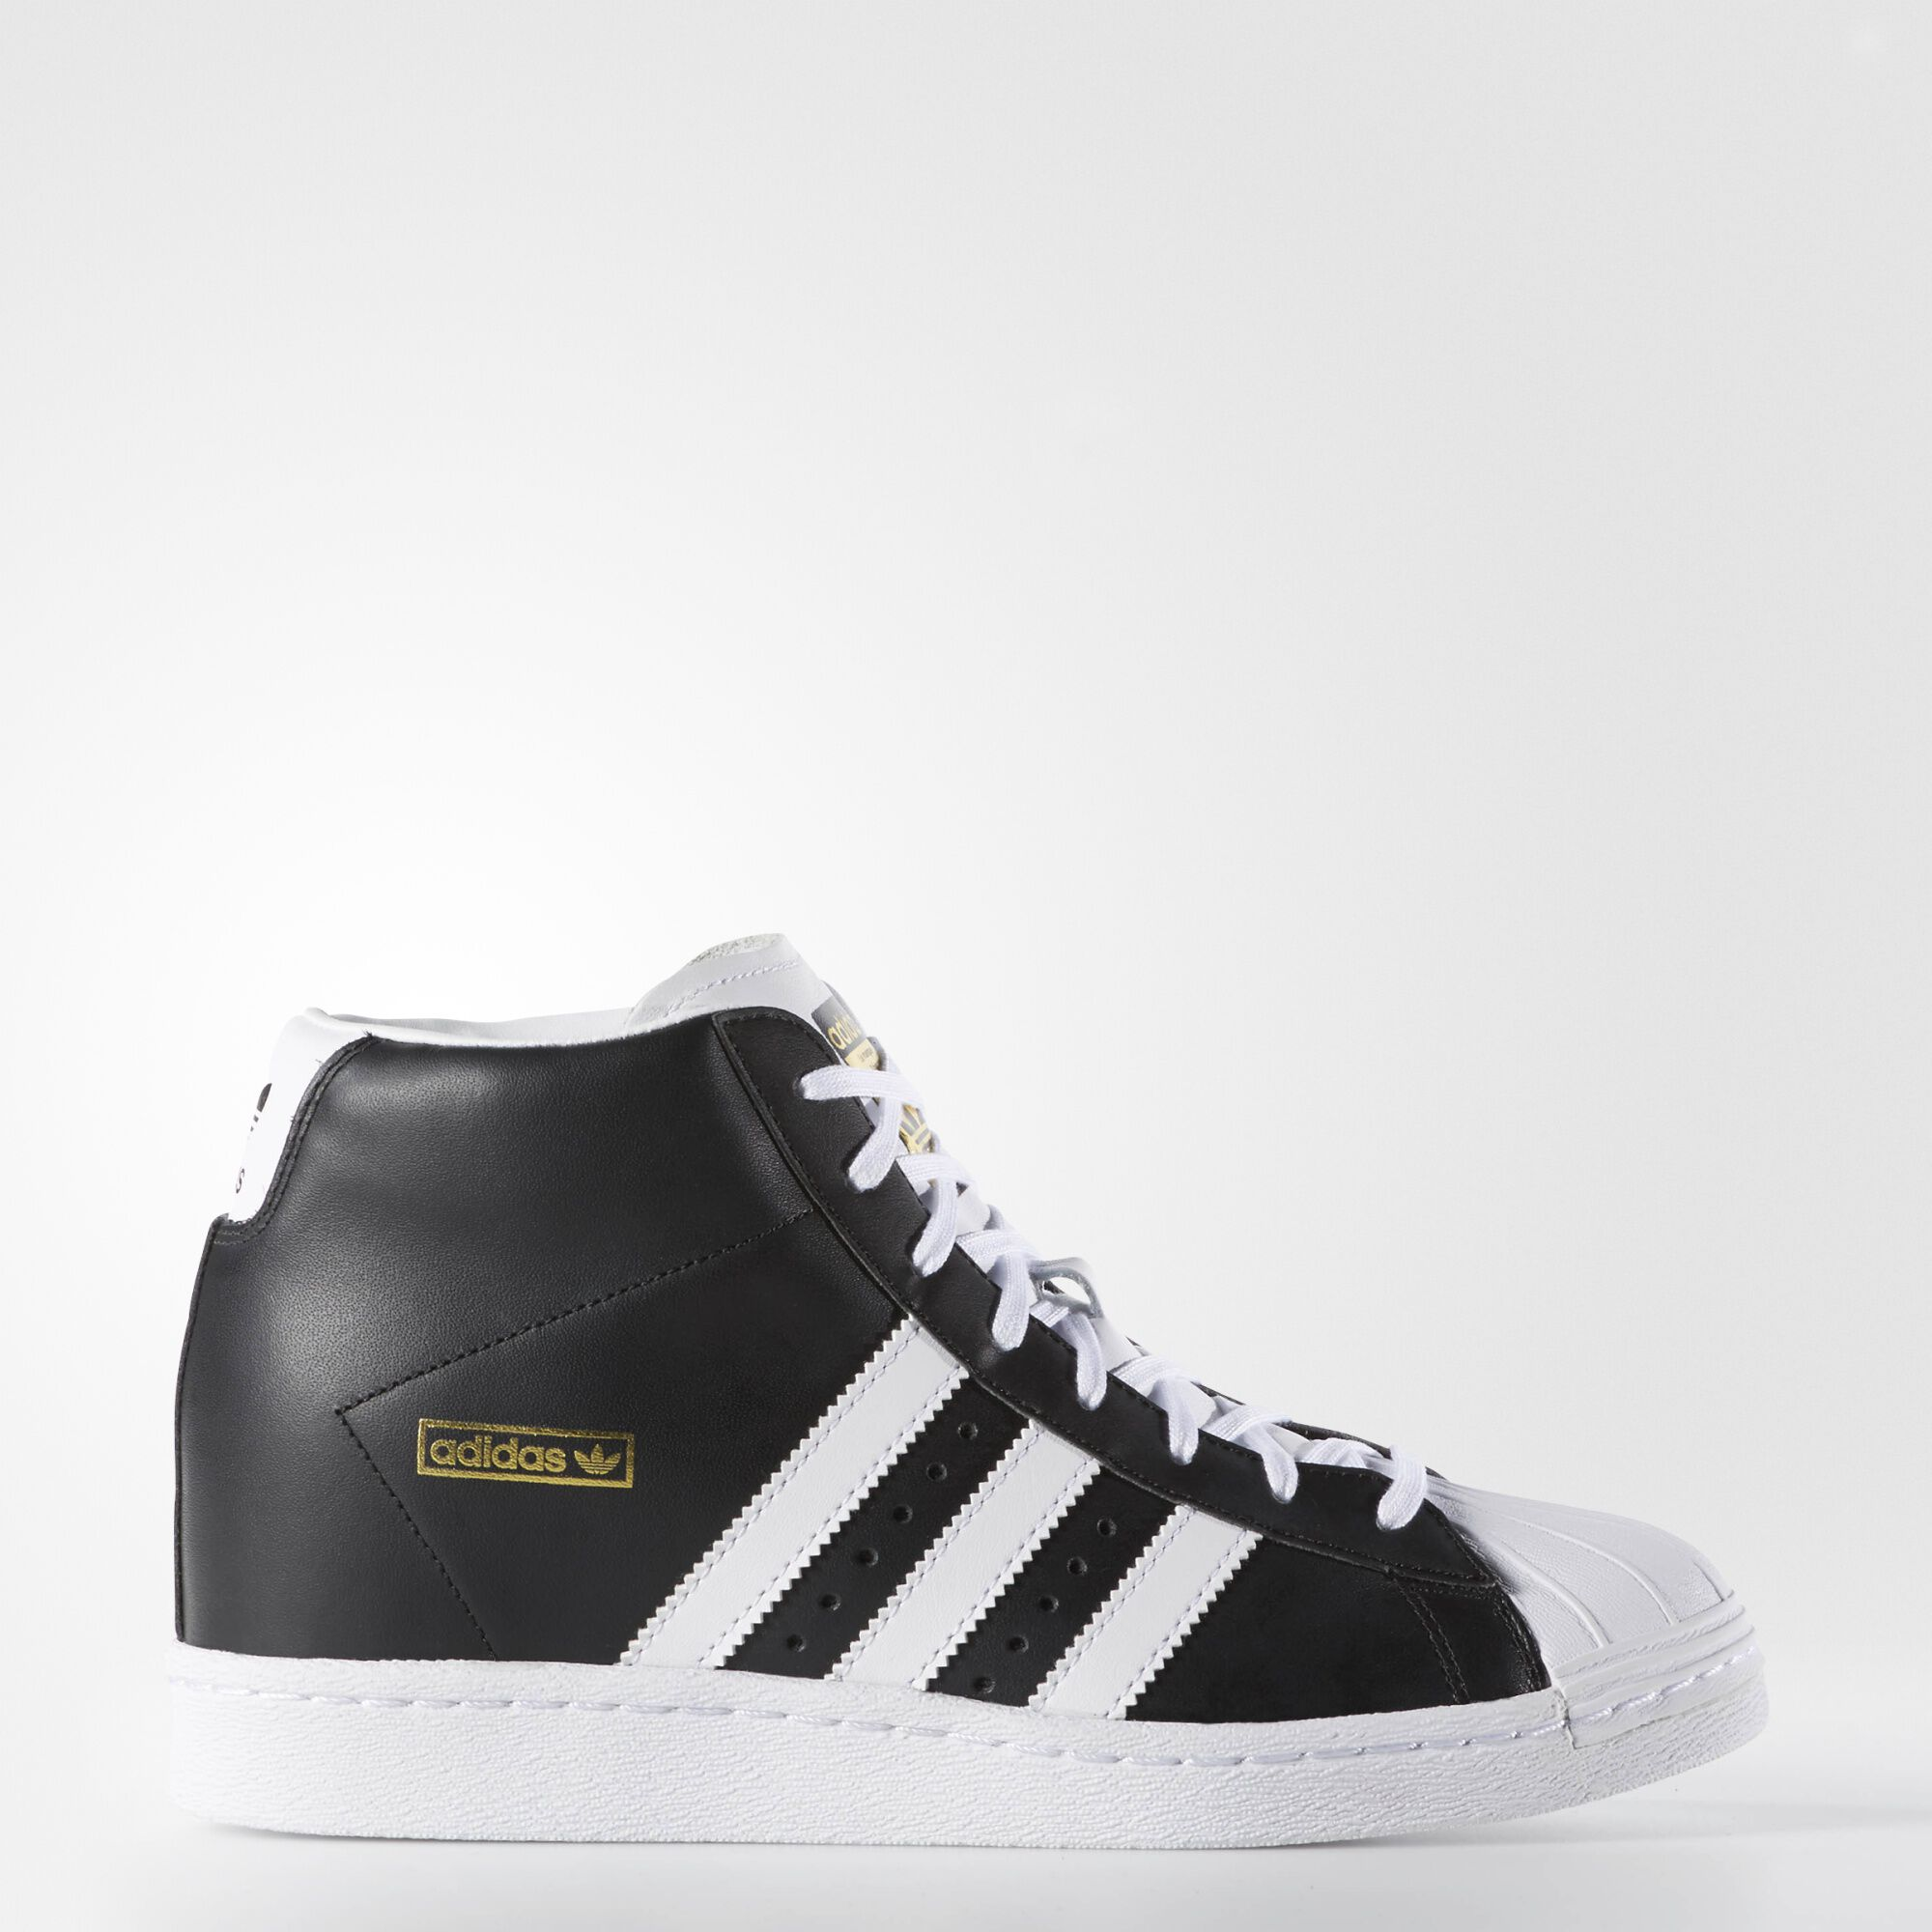 adidas Superstar up Wedge Shoes 80s Rita Ora Classic Comic